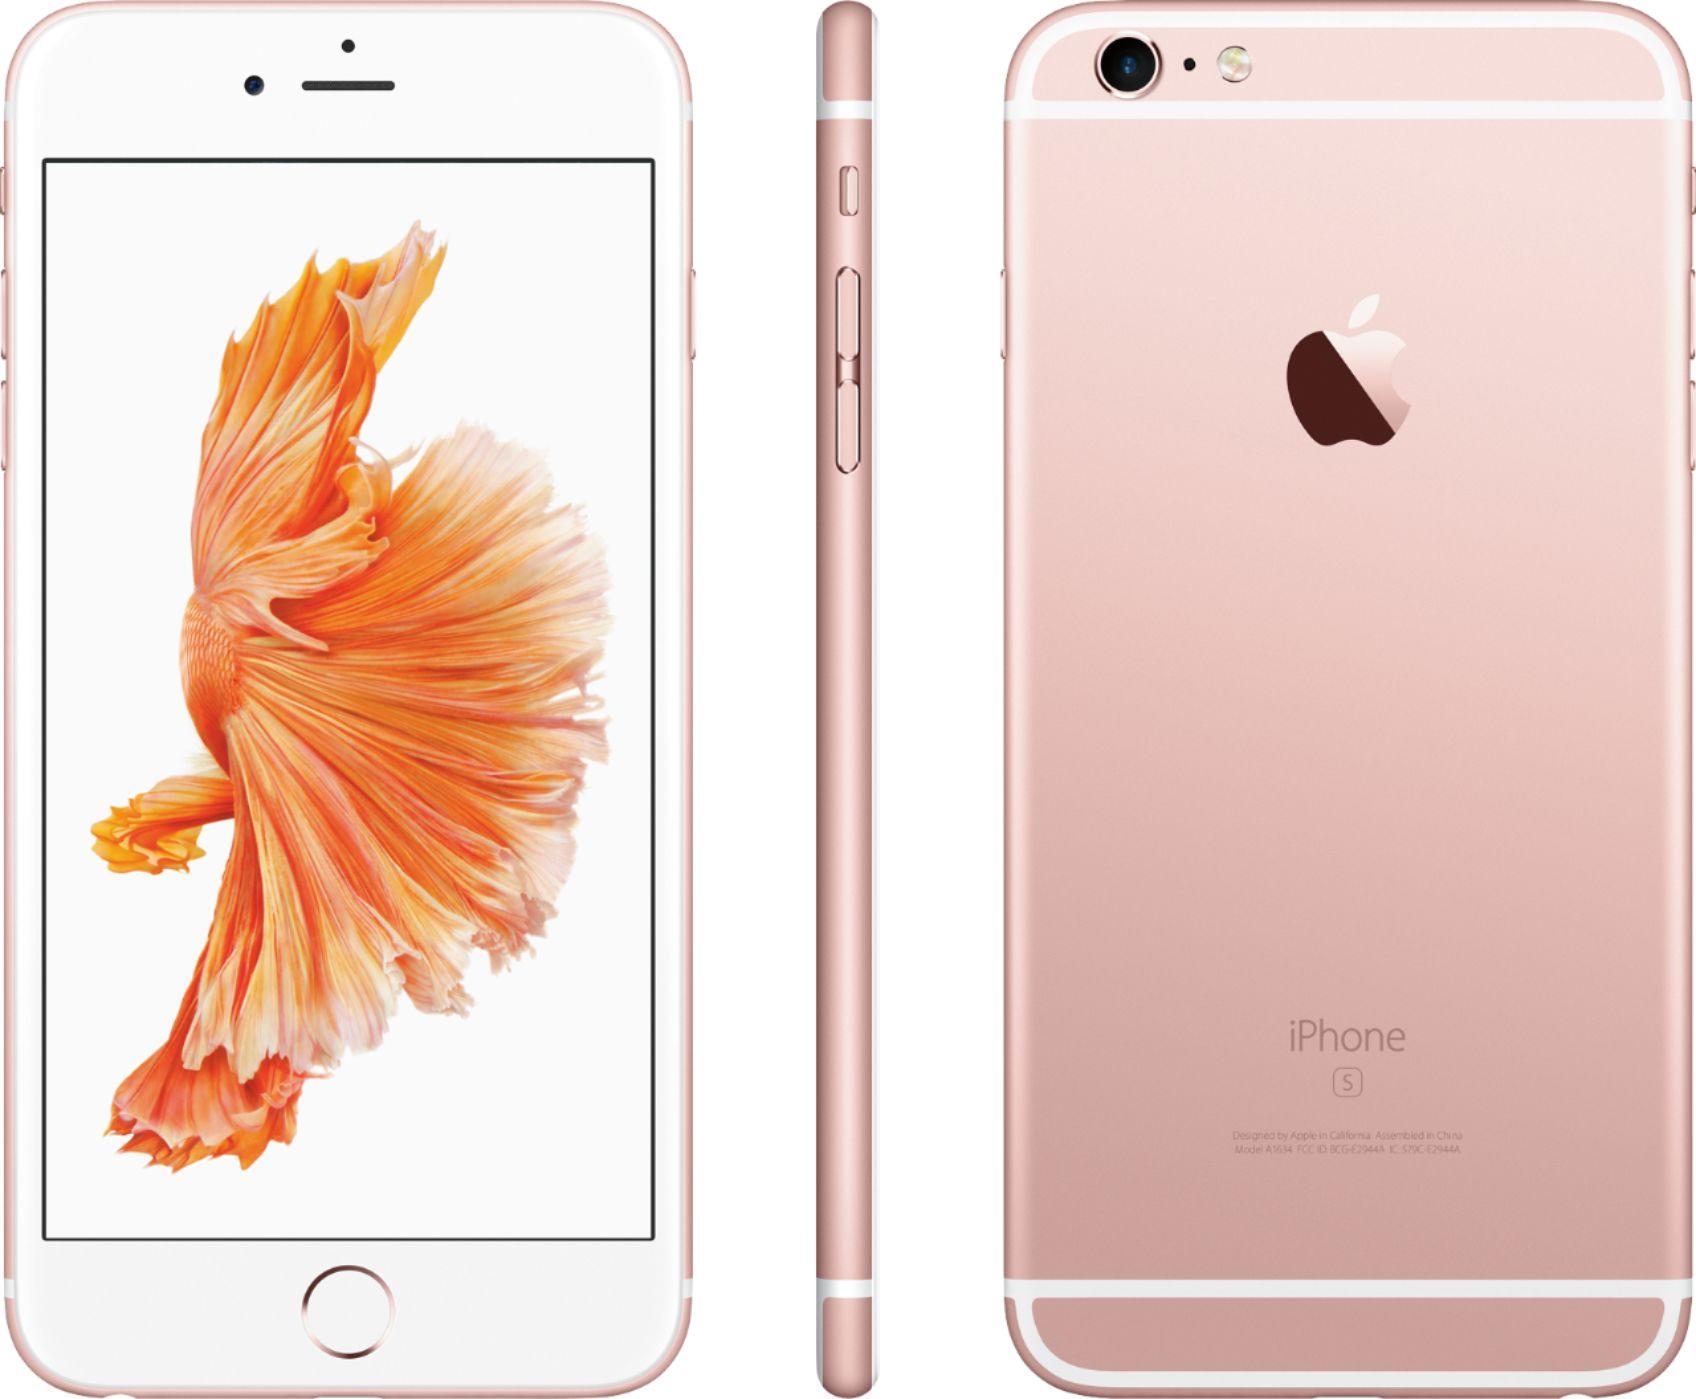 pretty nice e4895 f143c Details about Apple iPhone 6S 16GB Rose Gold Factory GSM Unlocked (AT&T /  T-Mobile) Smartphone